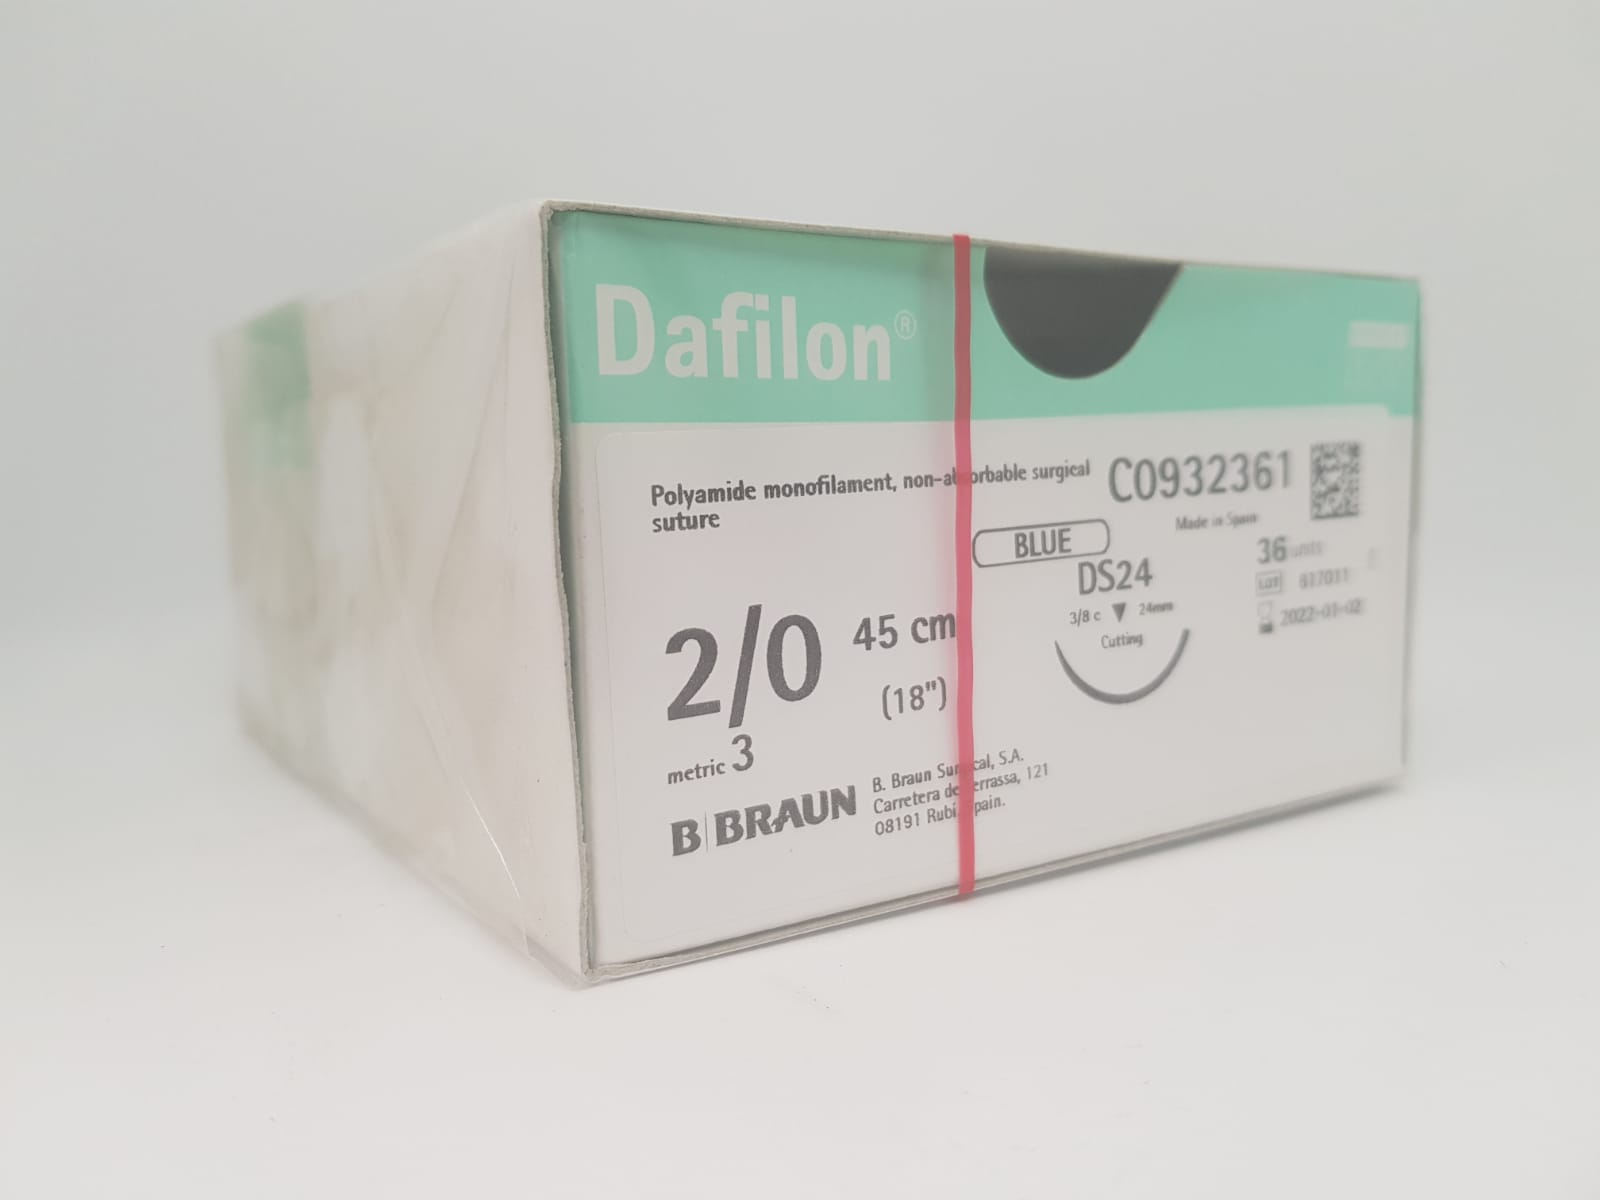 DAFILON 2/0 DS24 BLUE 45CM, BOX 36